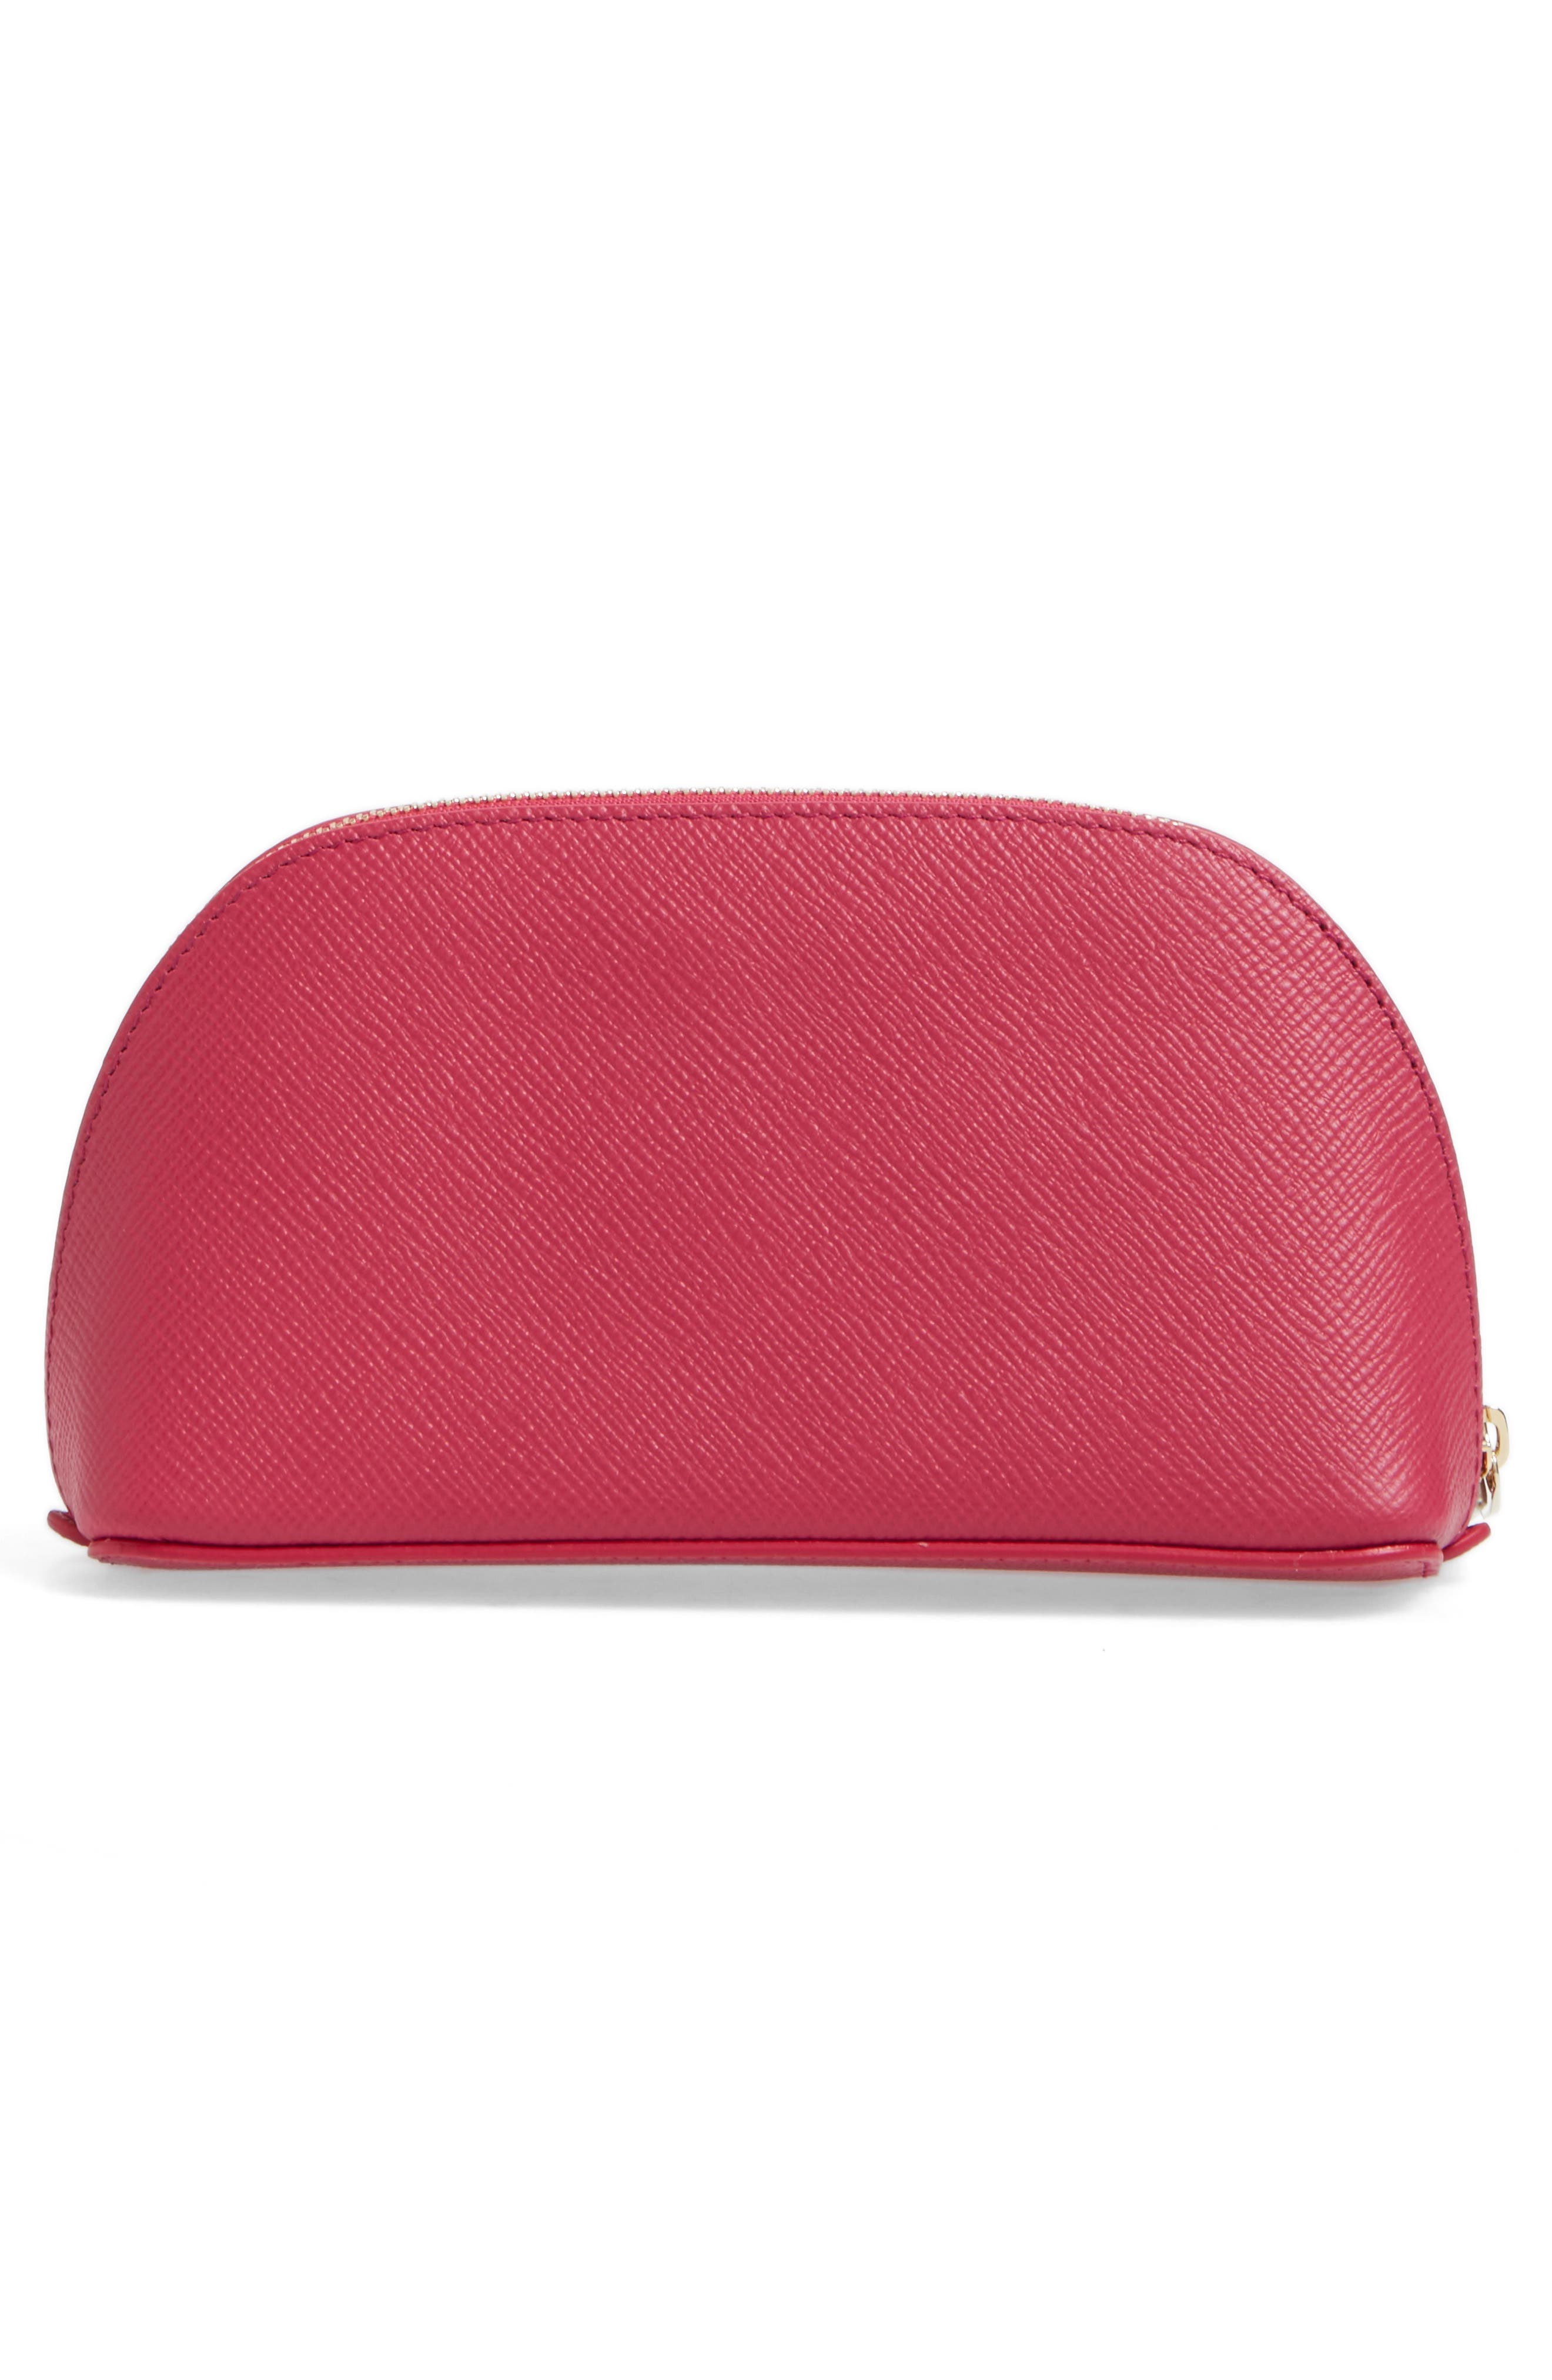 ,                             Small Calfskin Leather Cosmetics Case,                             Alternate thumbnail 8, color,                             650